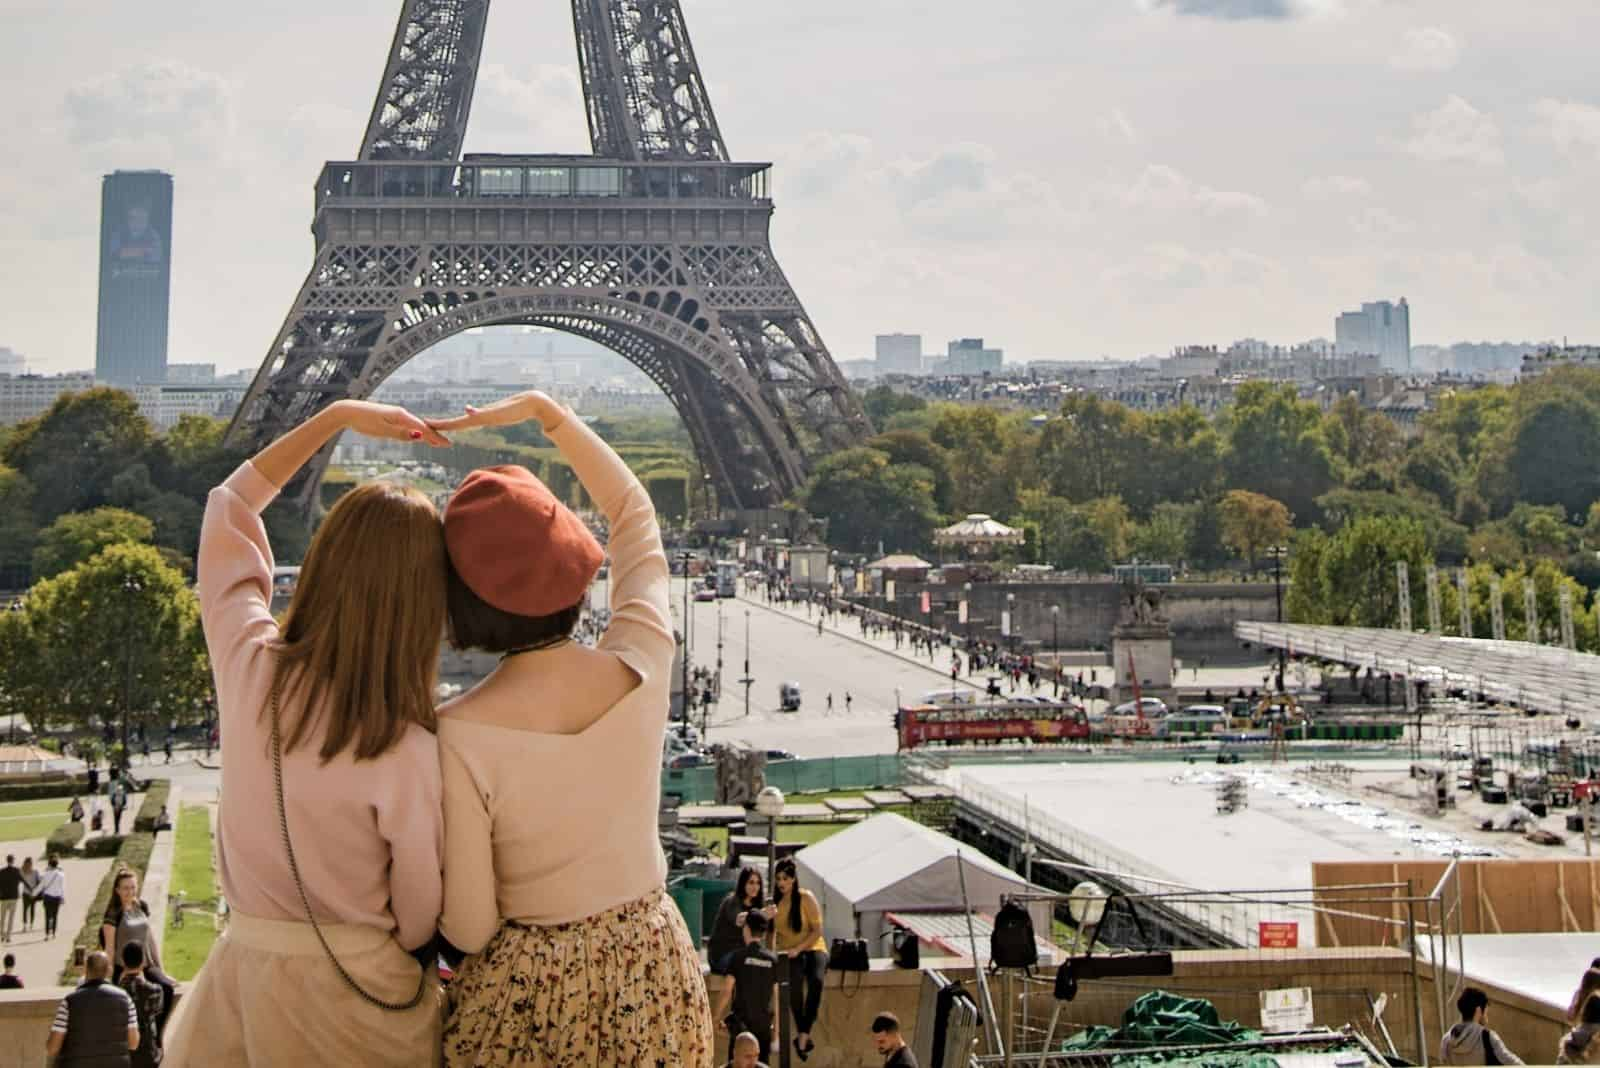 two french women making a heart shaped with their hands facing the Eiffel tower in France